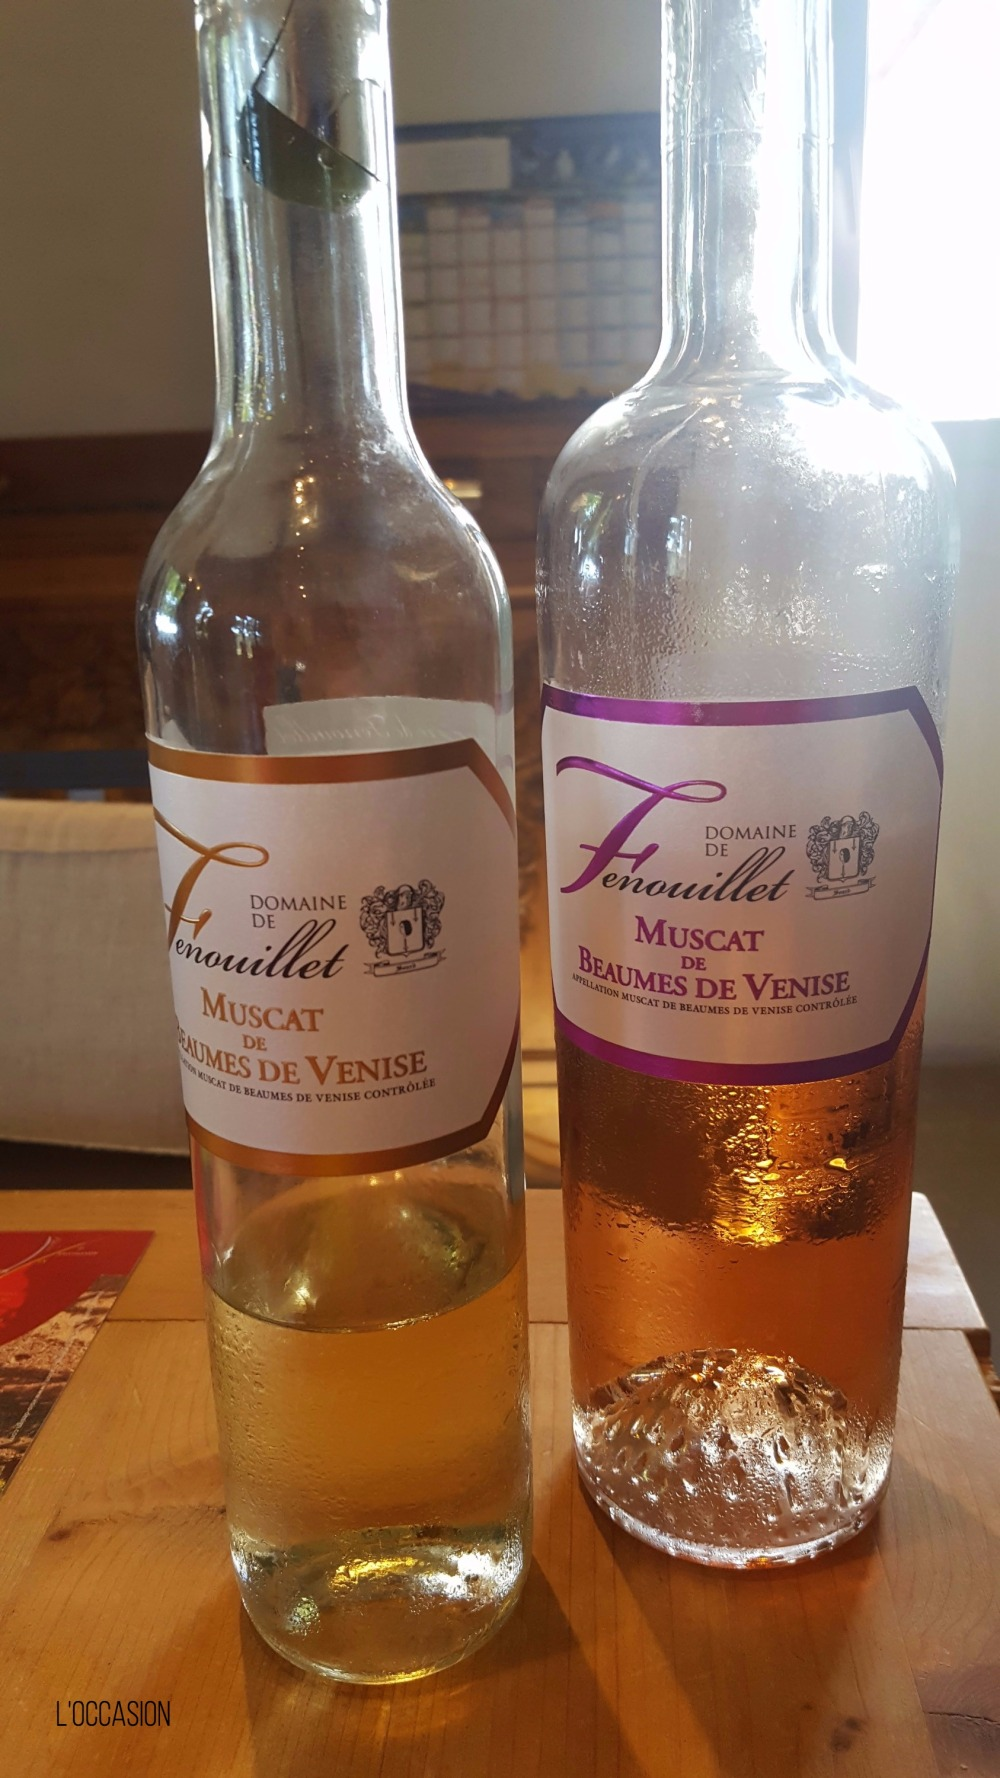 Dessert wine, sweet wine from France, southern French Wine